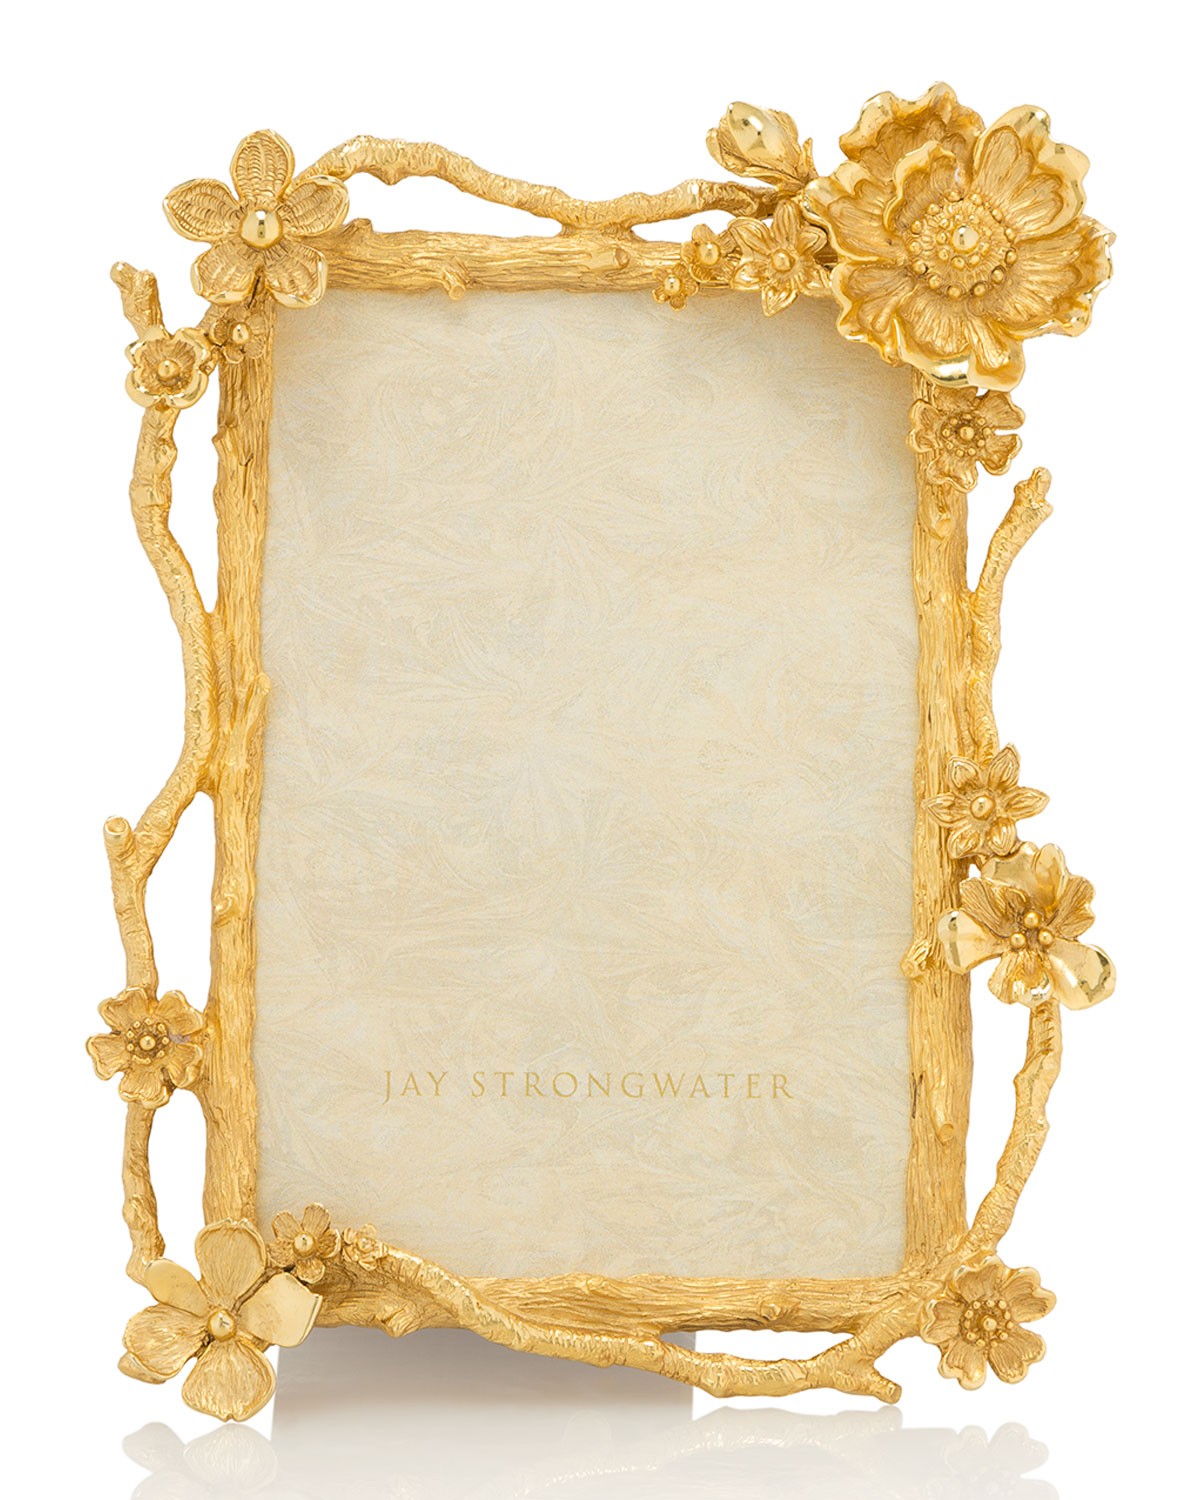 Jay Strongwater Floral Branch Picture Frame, 4\